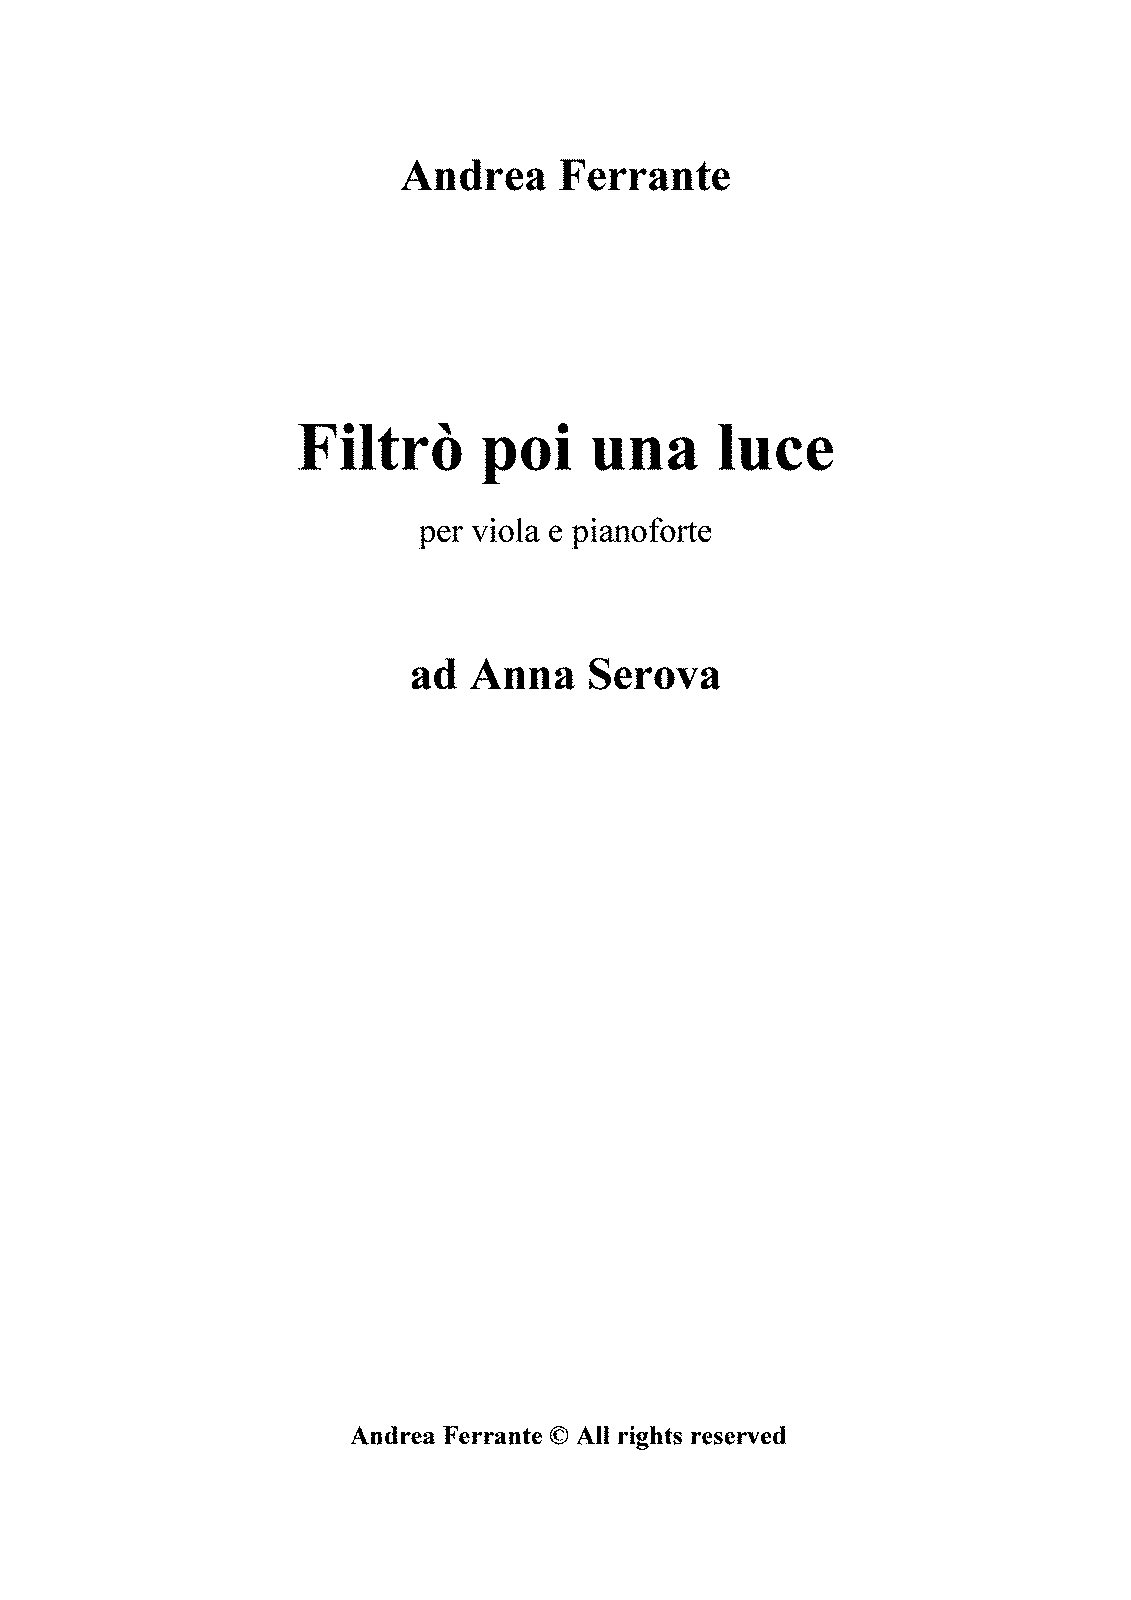 PMLP155096-A.Ferrante - Filtrò poi una luce - for viola and piano - SCORE.pdf